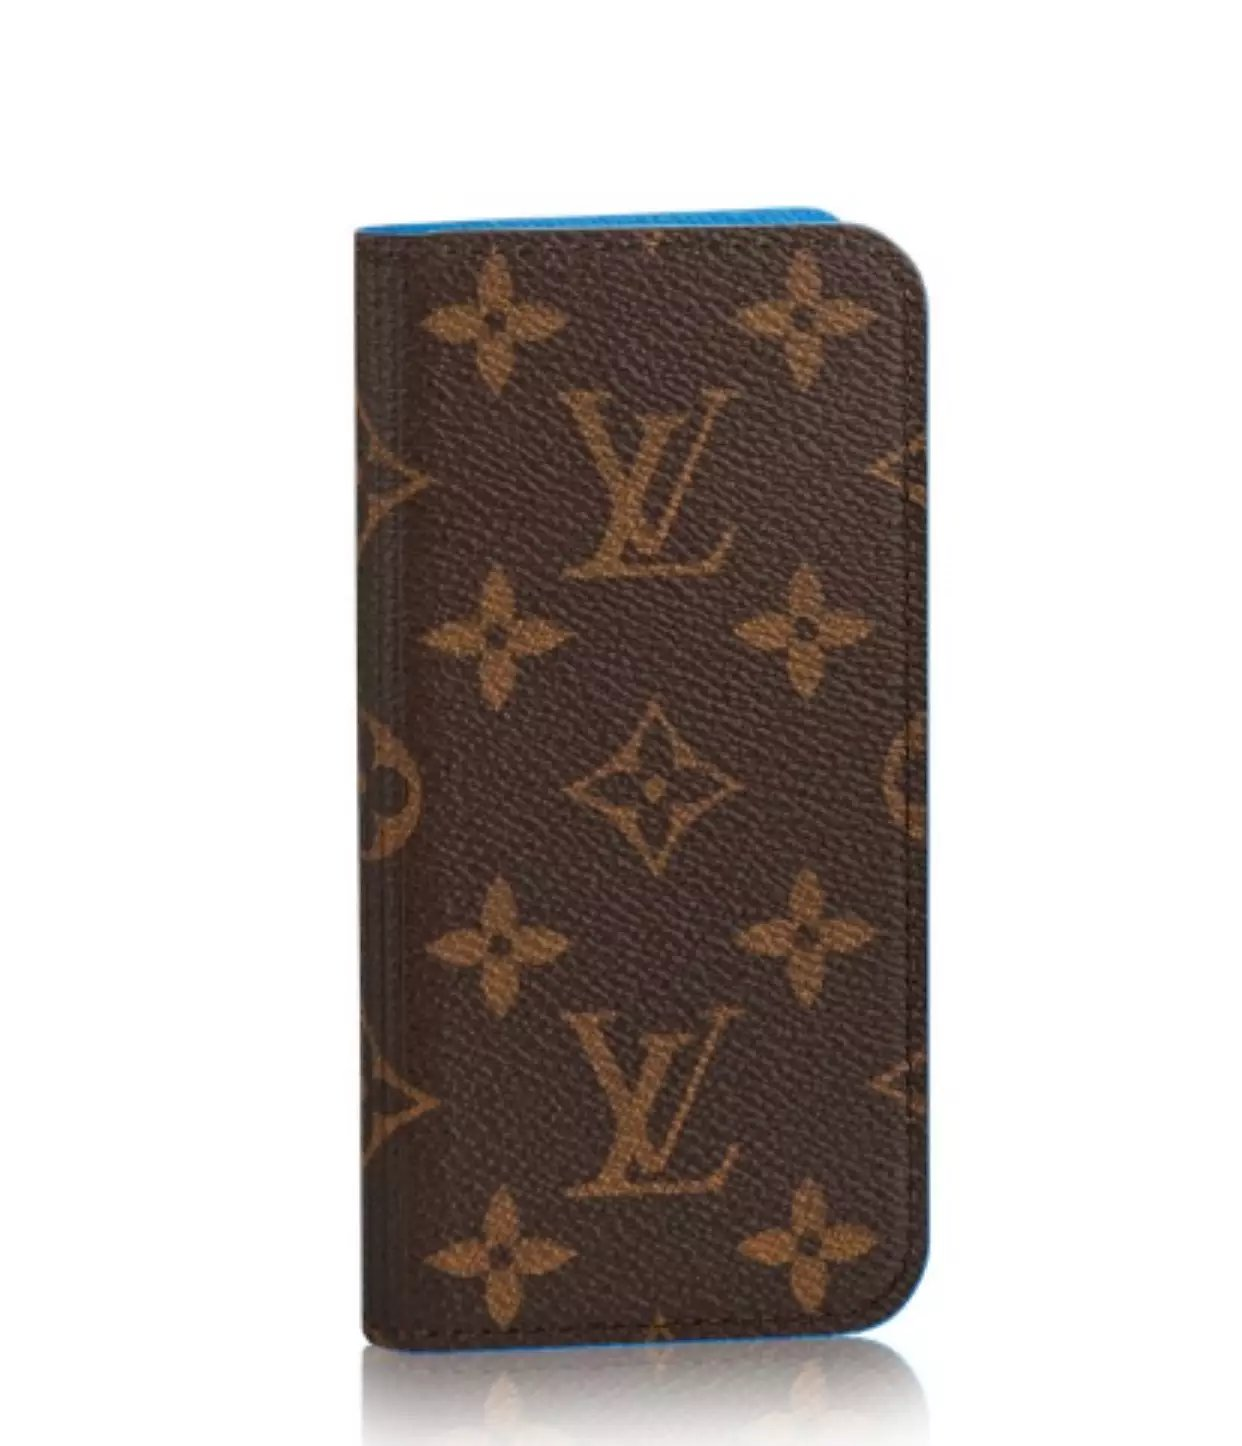 hülle für iphone handyhülle iphone Louis Vuitton iphone6 plus hülle günstige iphone 6 Plus iphone 6 Plus 6lbst gestalten maße iphone iphone display größe smartphone cover gestalten leder iphone 6 Plus